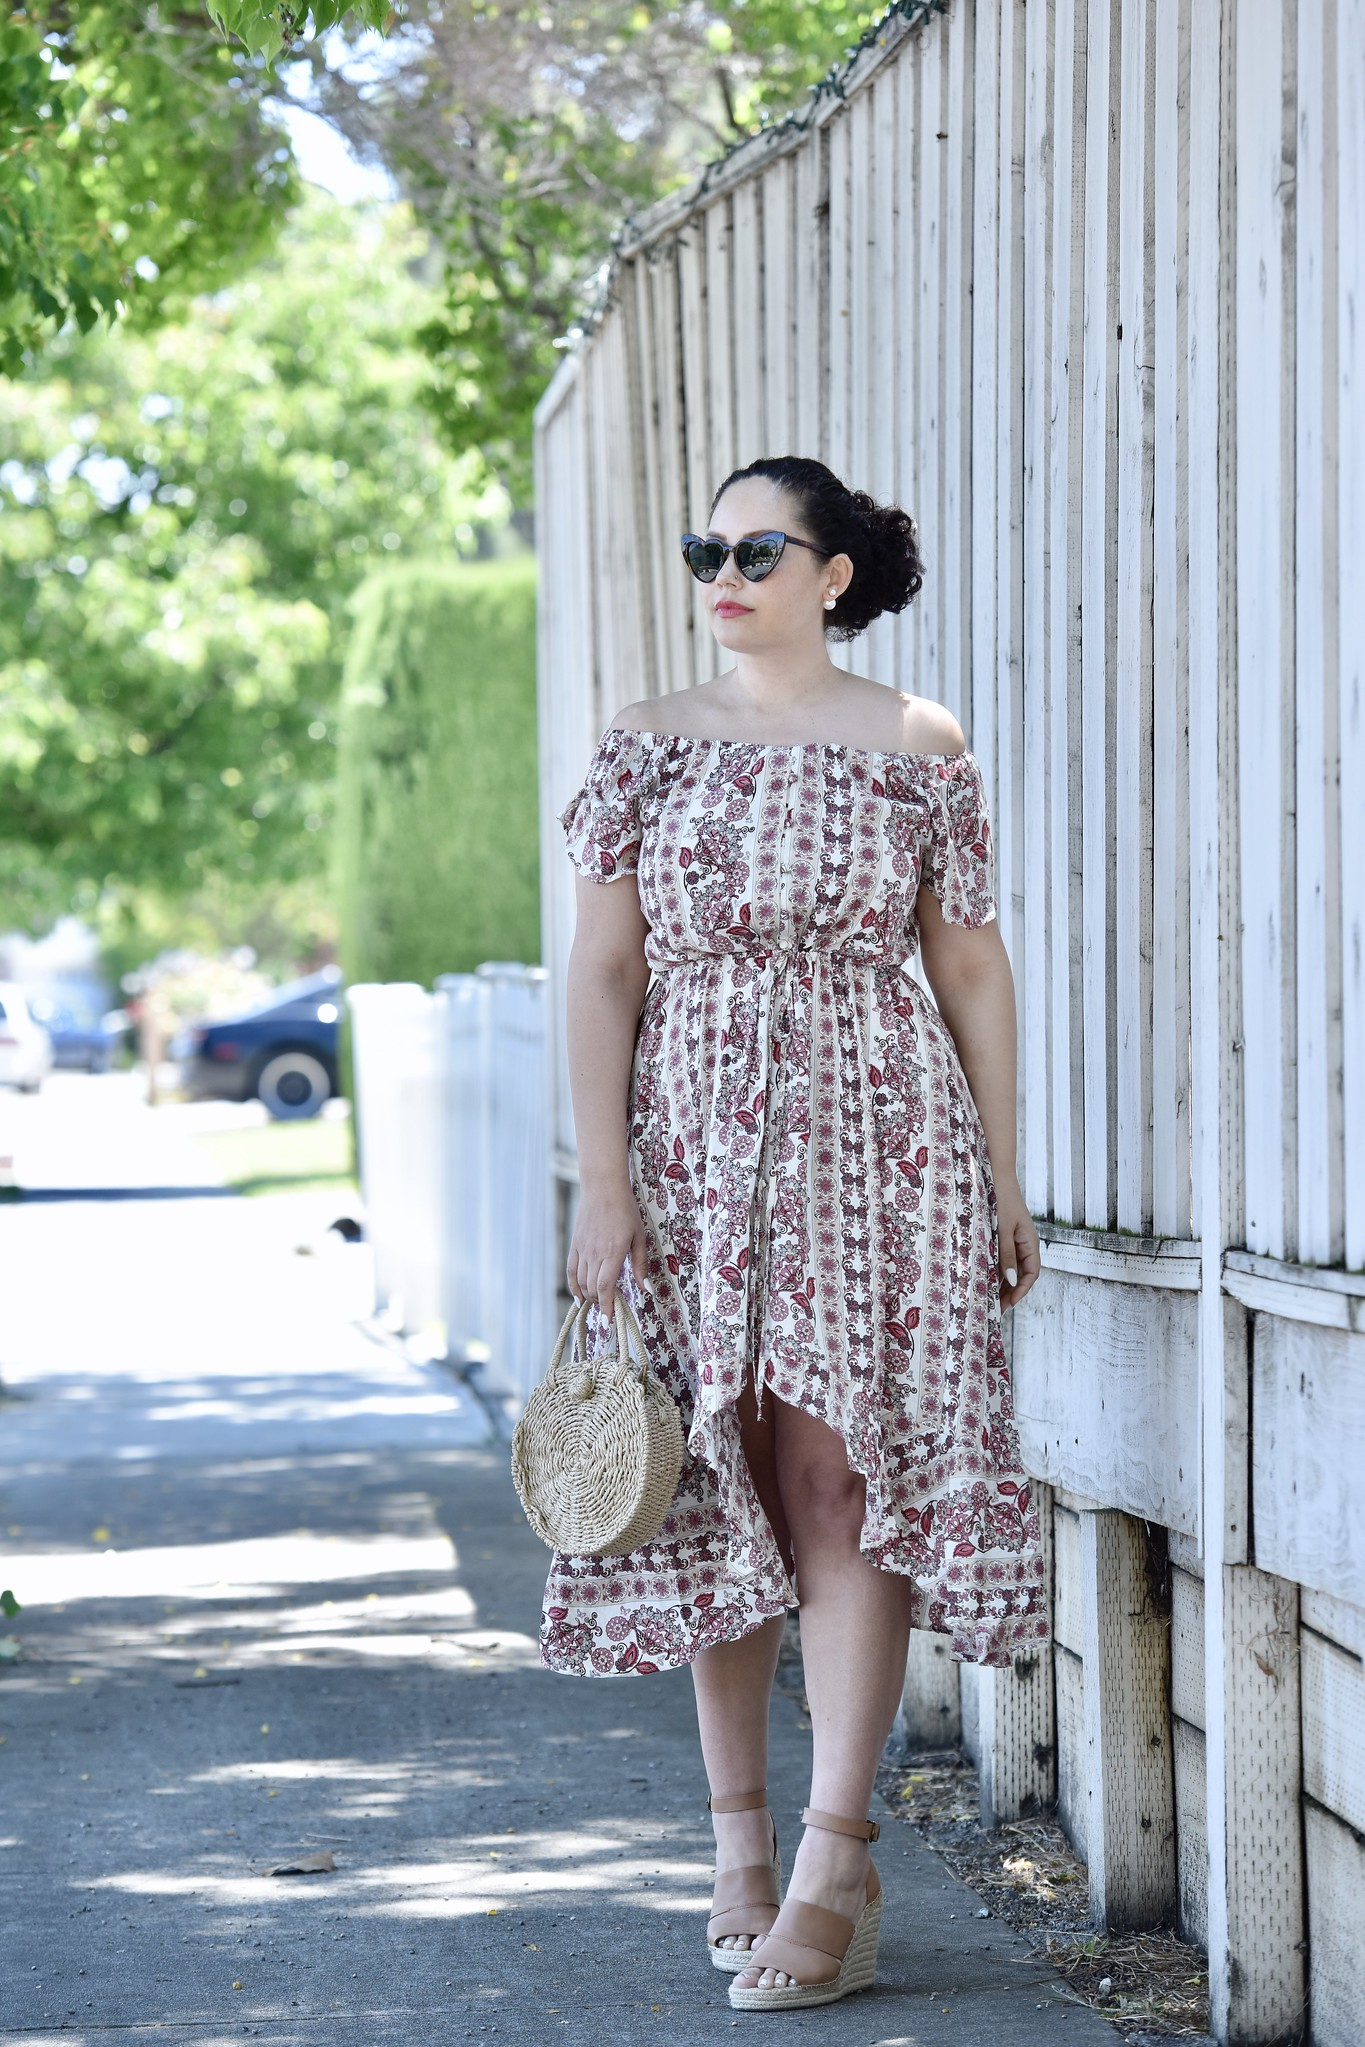 This $22 Dress is a Must-Have via @GirlWithCurves #dress #budget #walmart #plussize #style #fashion #floral